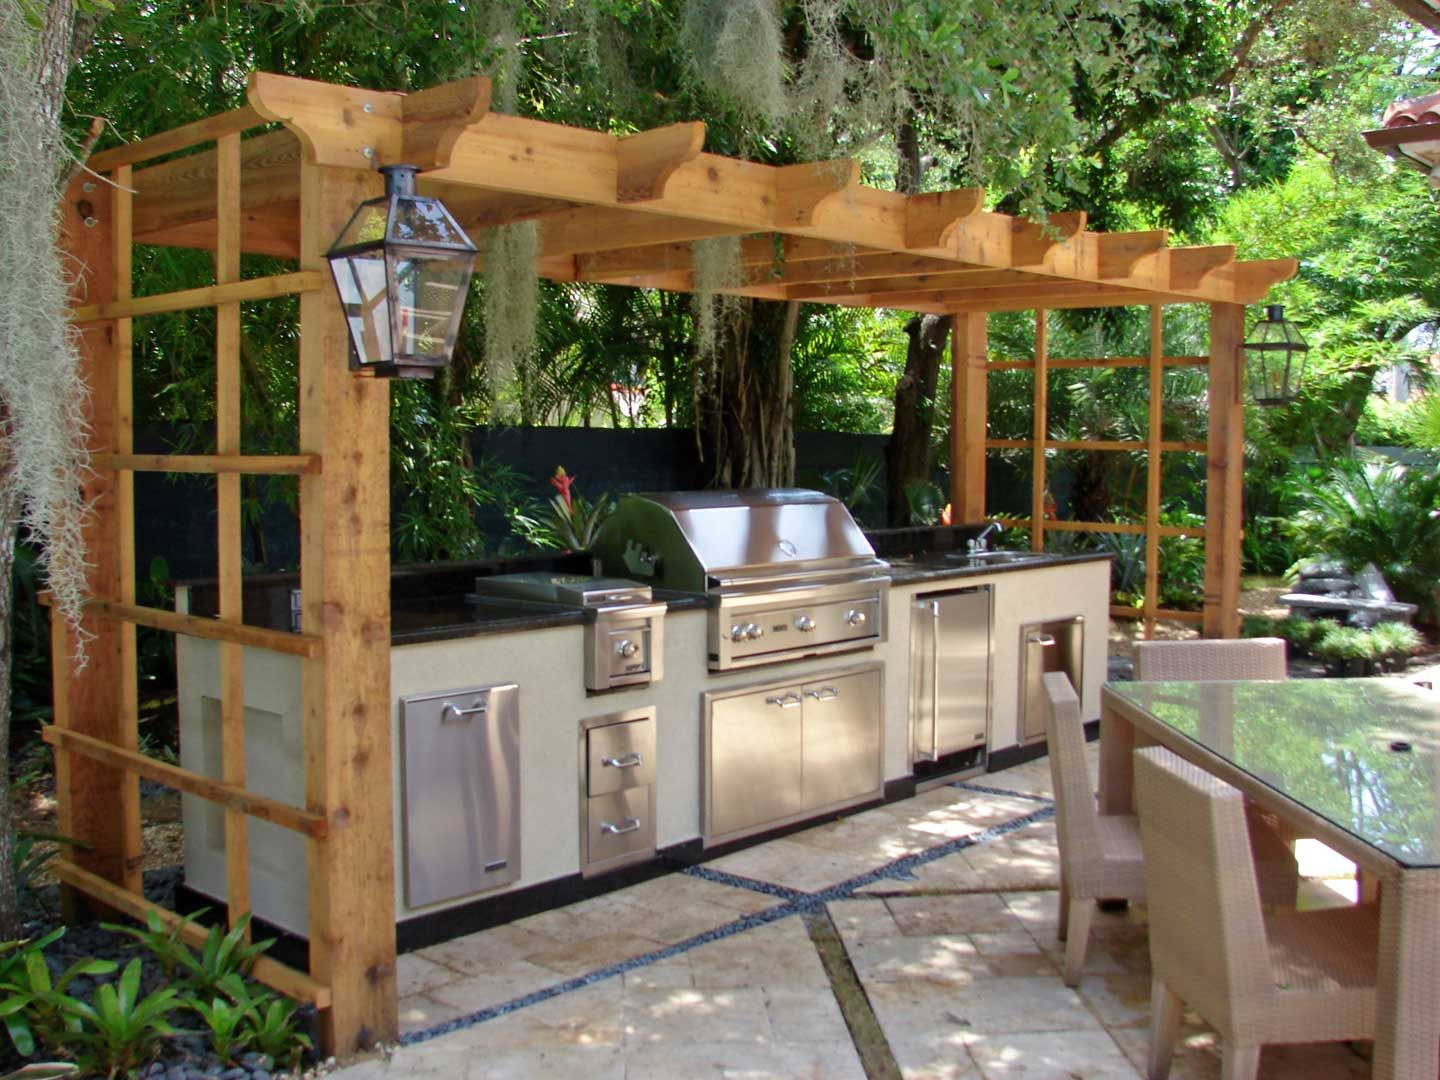 best images about outdoor kitchen on pinterest backyards outdoor kitchens designs - Outdoor Grill Design Ideas